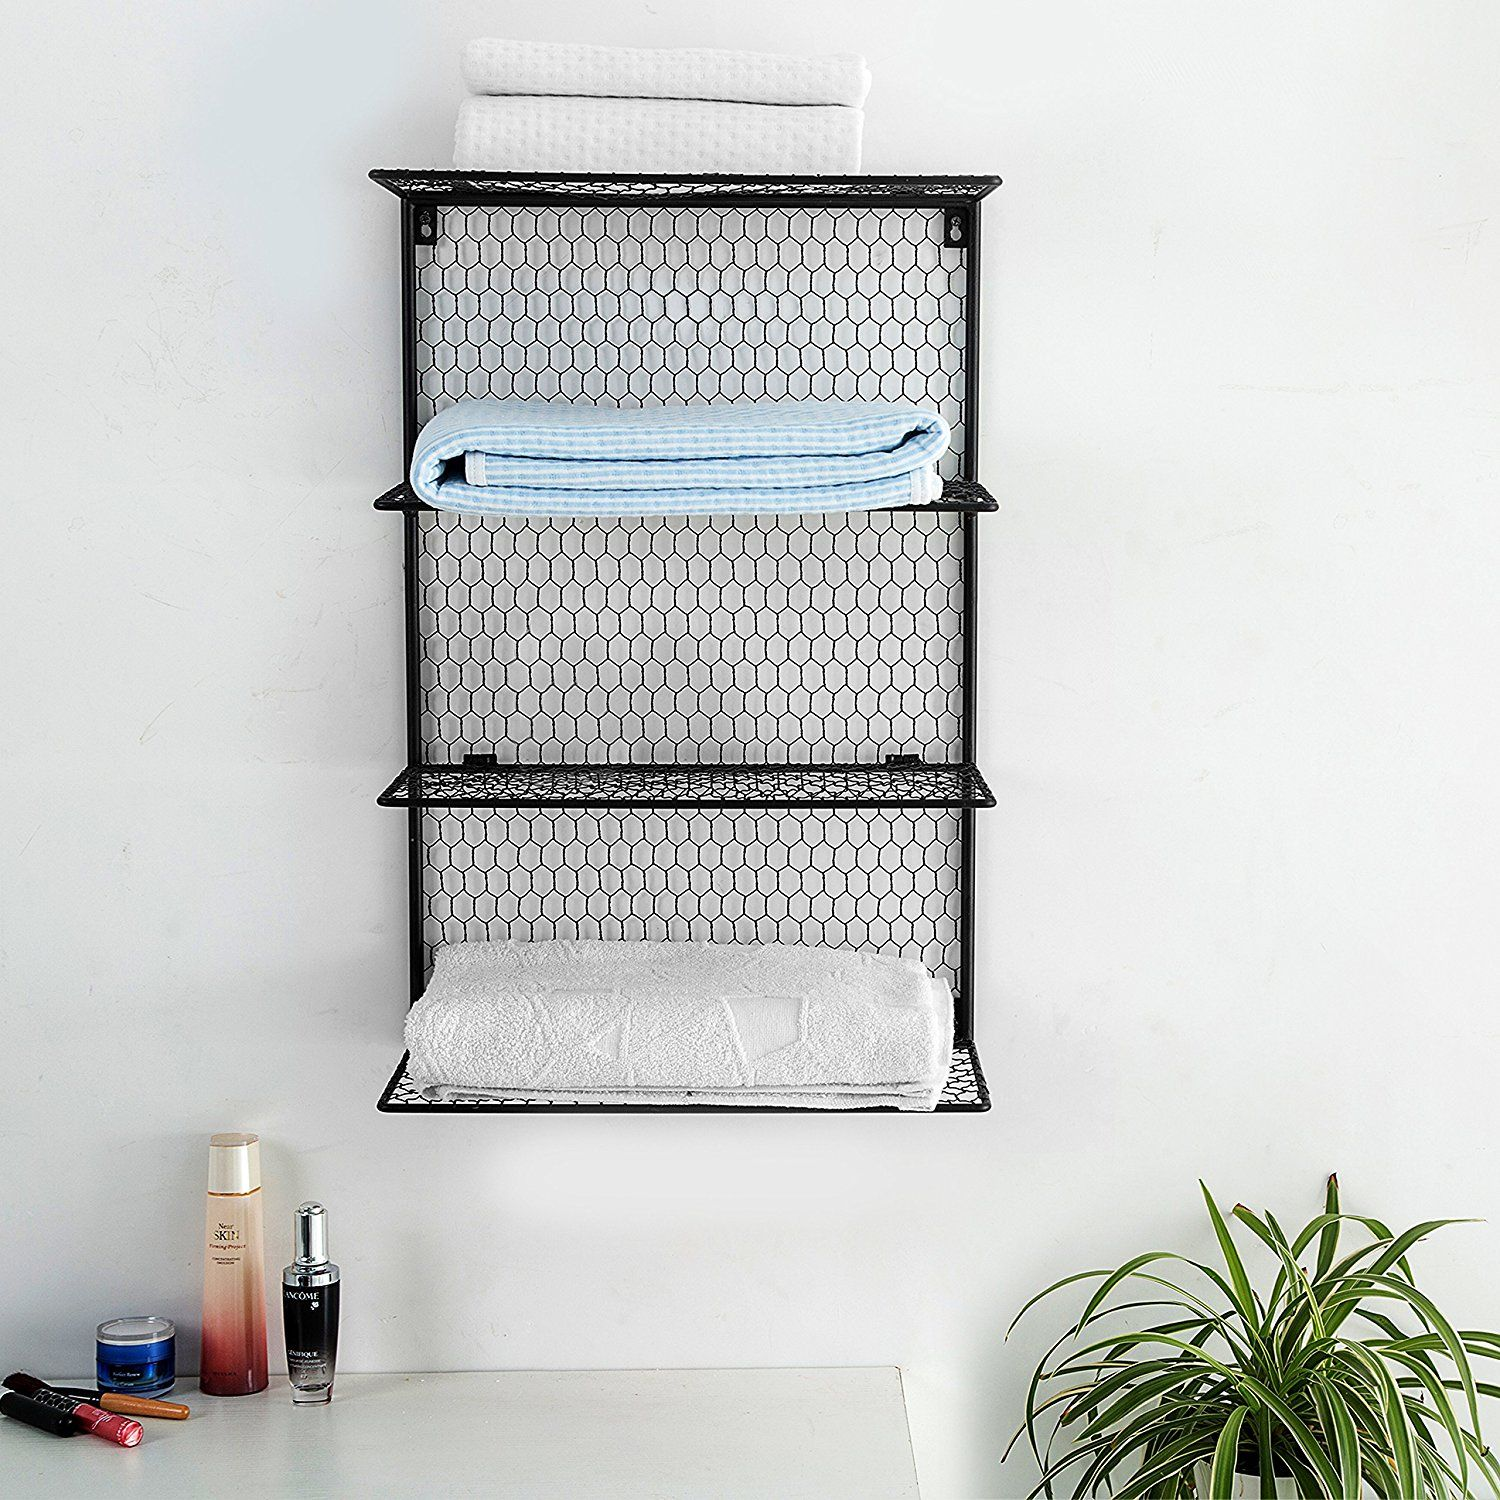 Simple And Attractive 4 Tier Wall Mounted Metal Chicken Wire Mesh Bathroom Towel Storage Shelving Unit Towel Storage Bathroom Towel Storage Storage Shelves